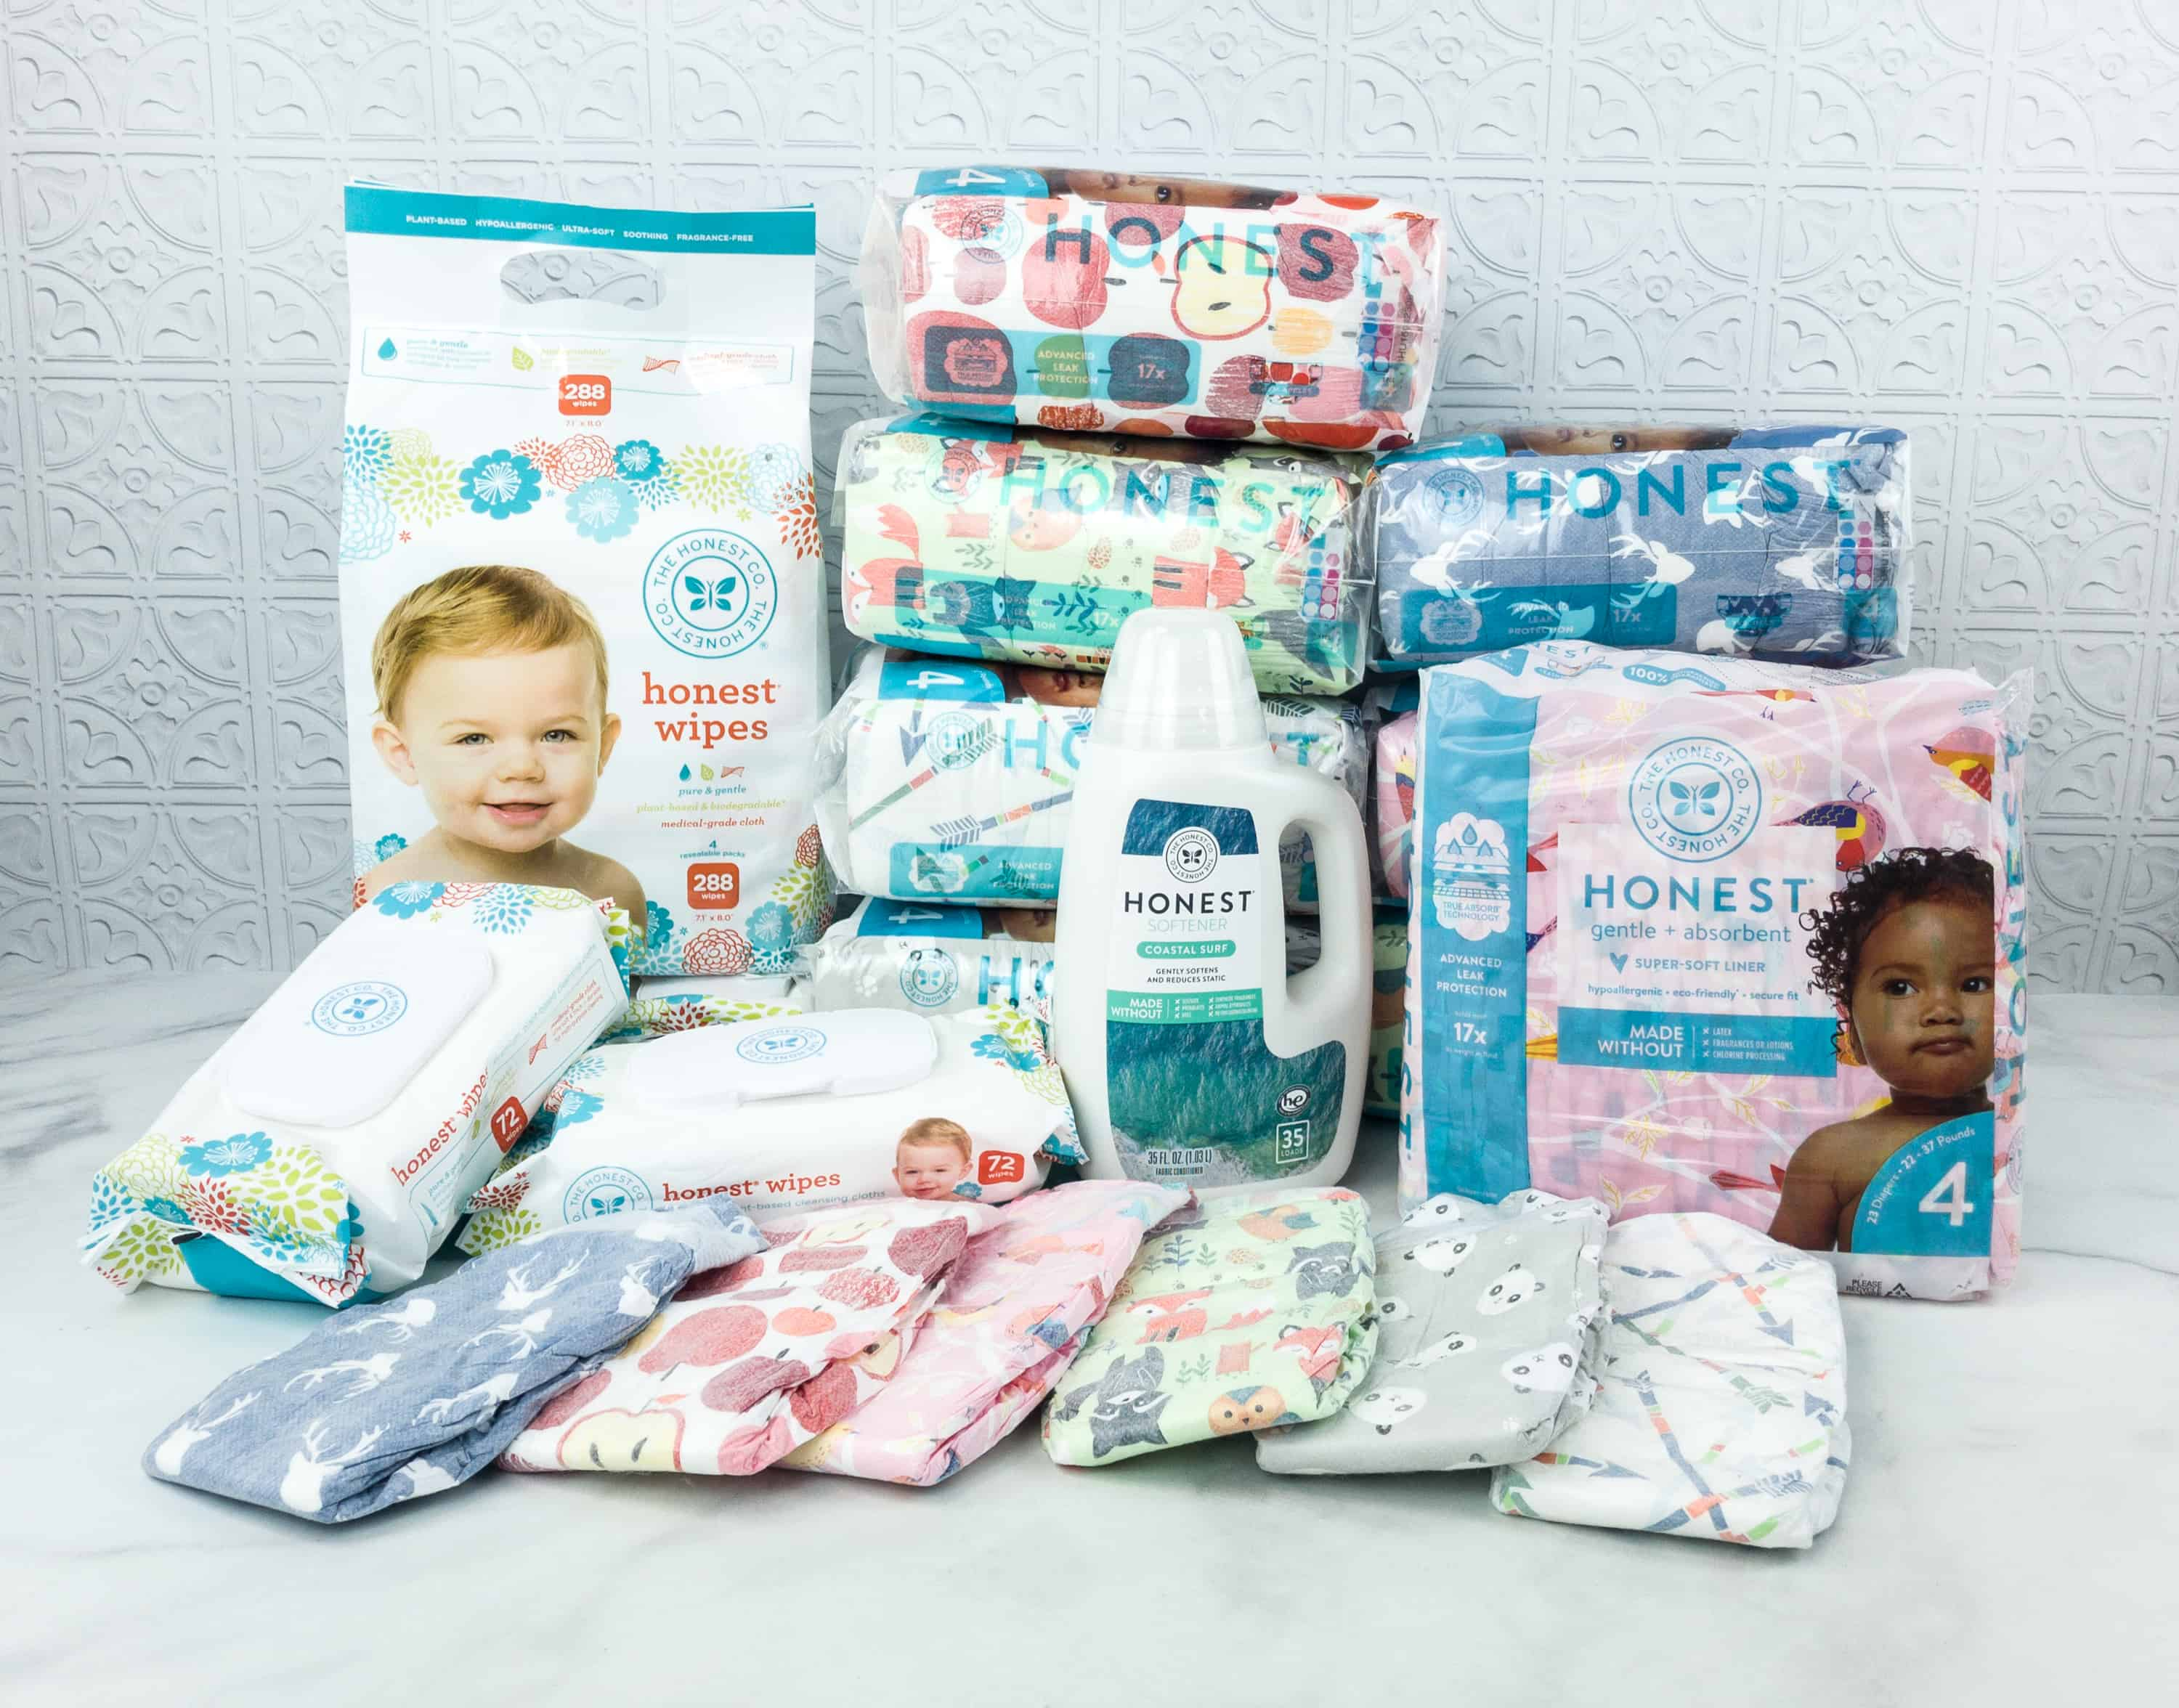 Yep, This Ends Tonight Too: Honest Company Cyber 50% Diaper Bundles for New Members!